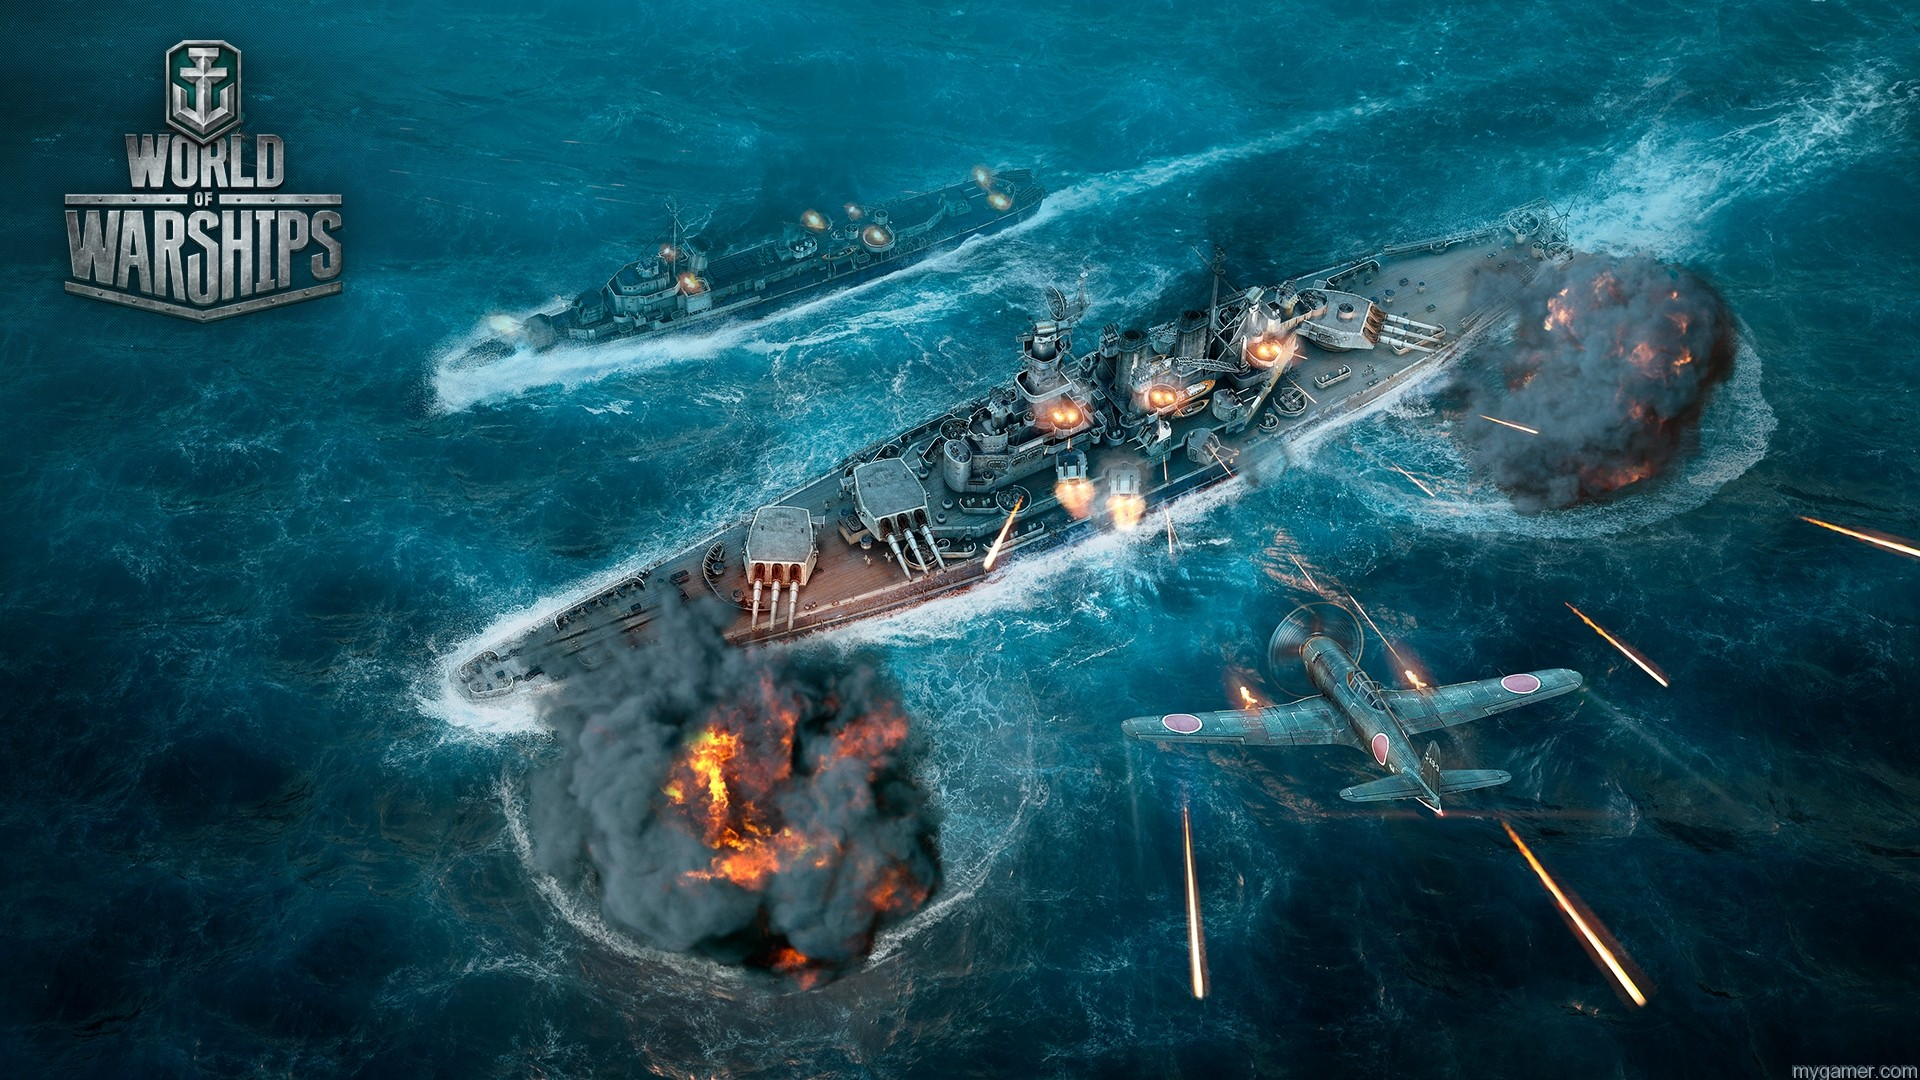 Download-World-of-Warships-game World of Warships Review World of Warships Review Download World of Warships game